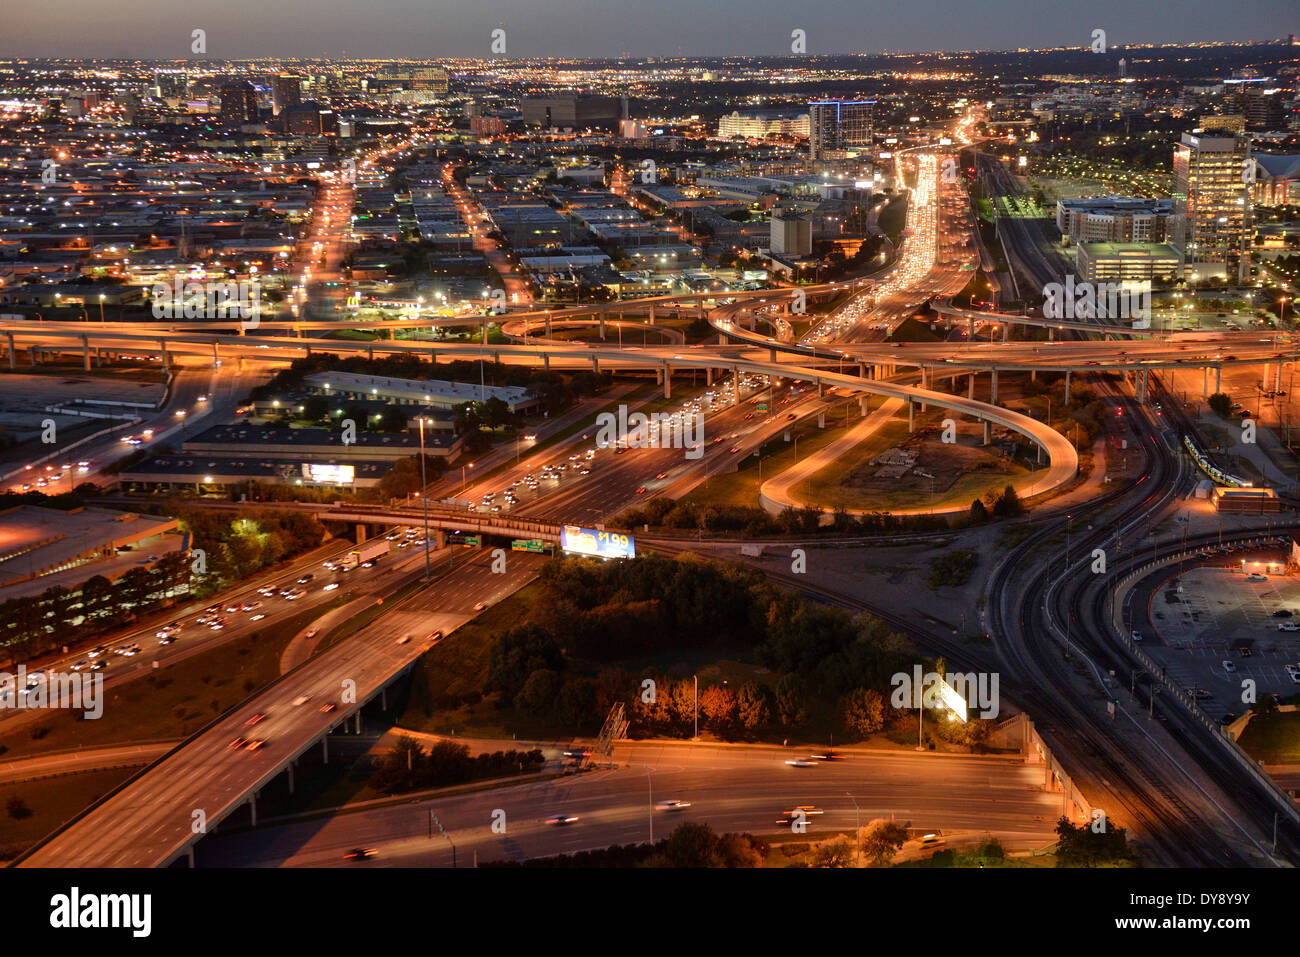 North America, Texas, USA, United States, America, Dallas, freeway, street, urban, sprawl, urban, night, traffic, lights - Stock Image